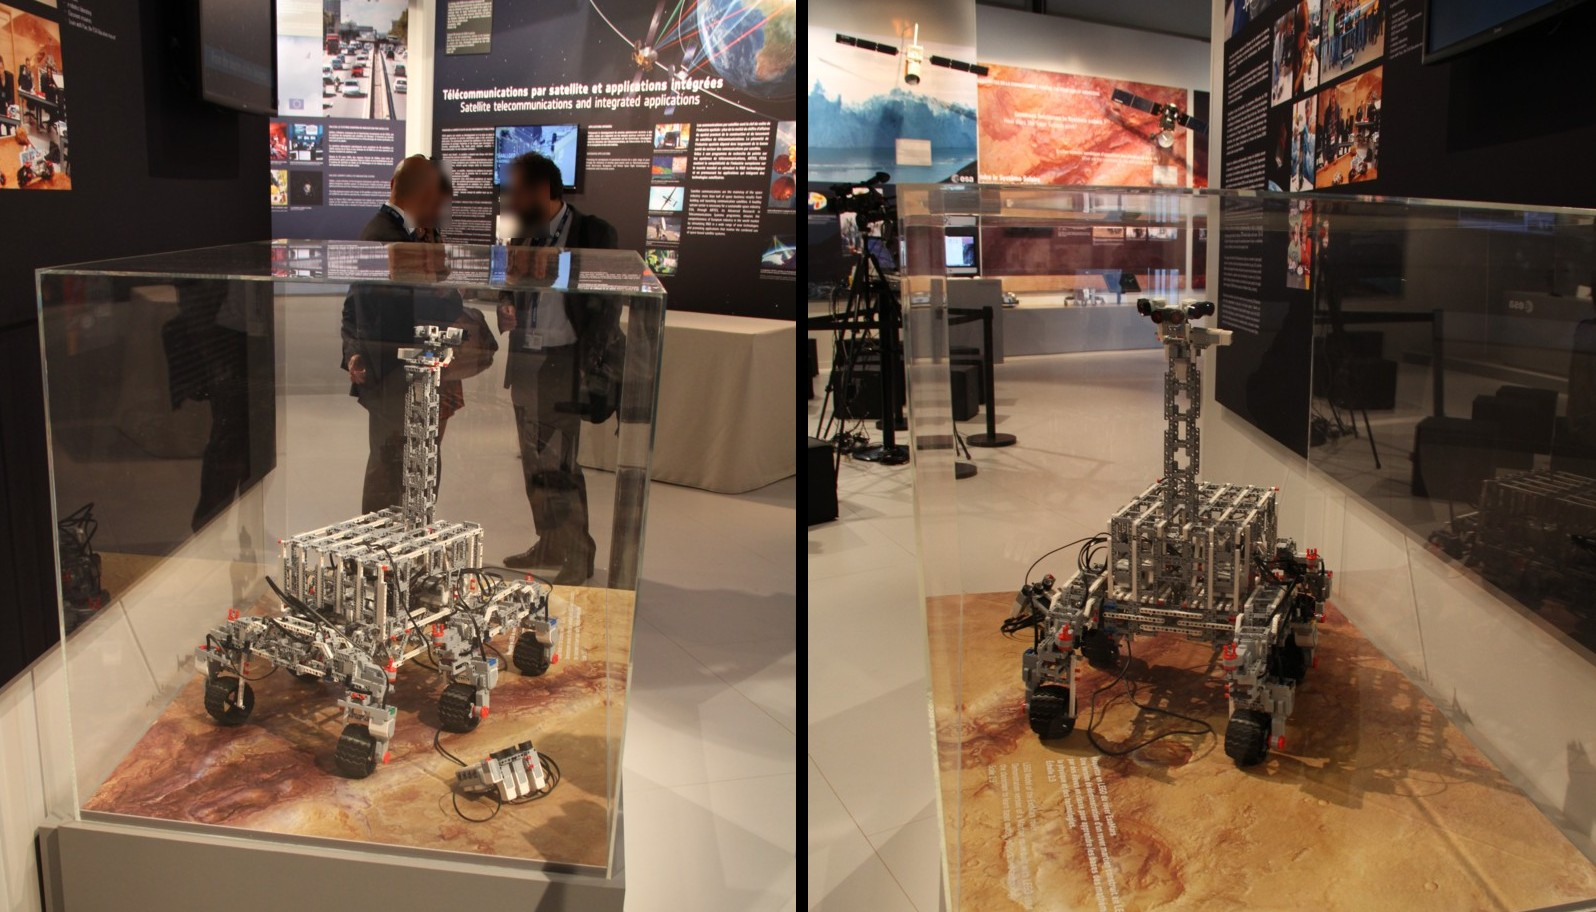 15 06 16 - 13h 48m 58s - bourget esa rover lego montage r